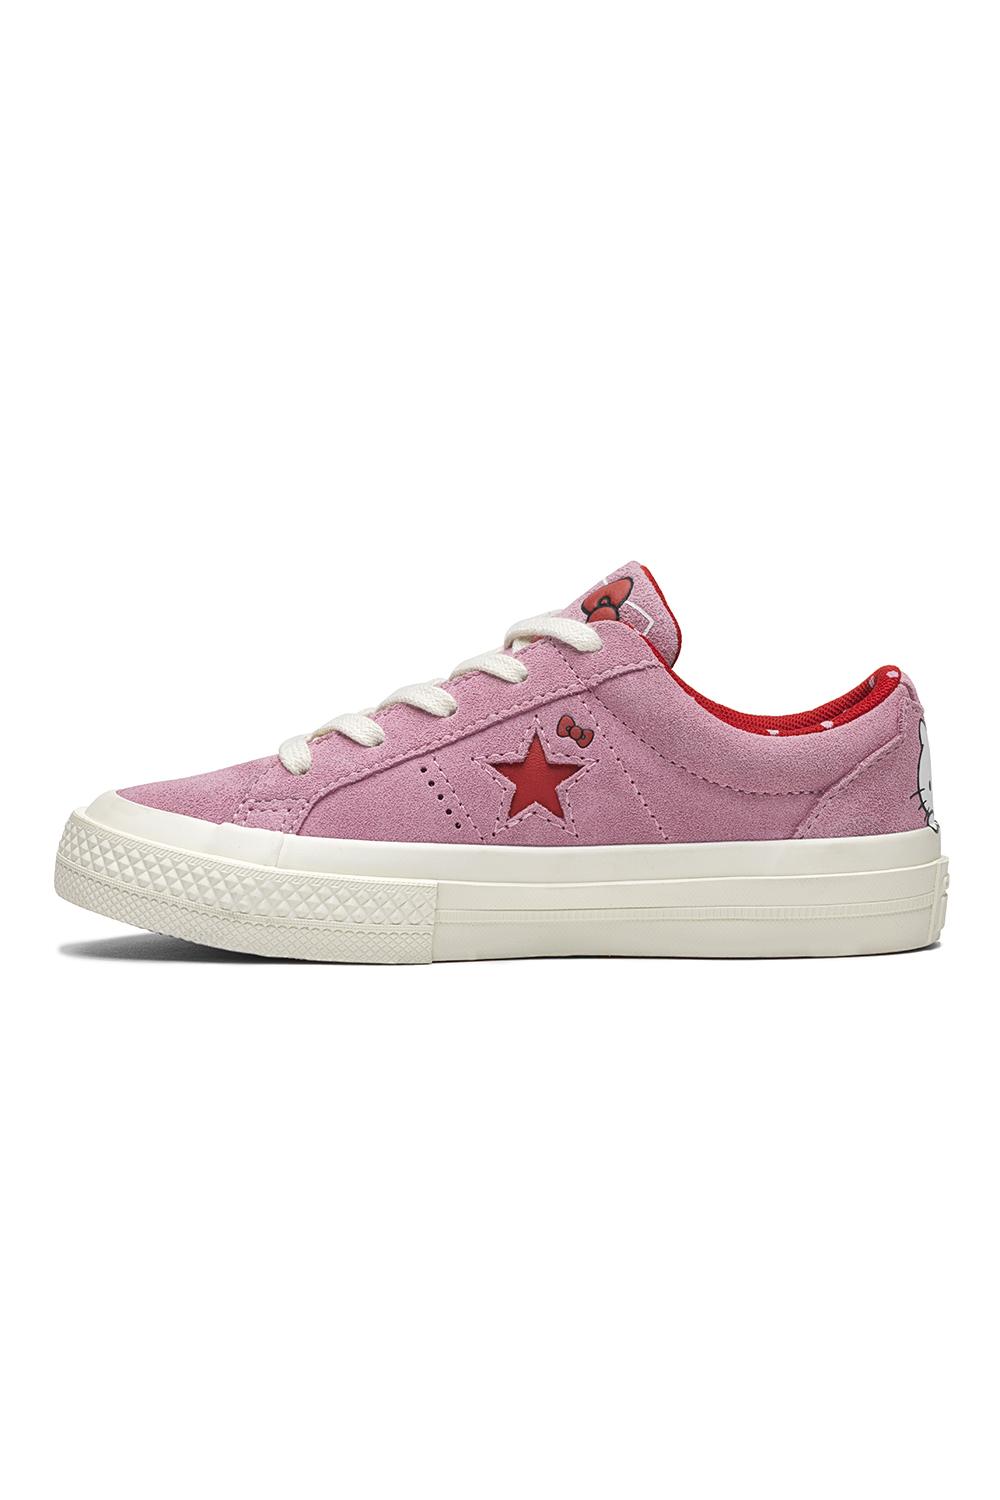 CONVERSE - Κοριτσίστικα Σουέντ Sneakers Converse X Hello Kitty One Star Ροζ